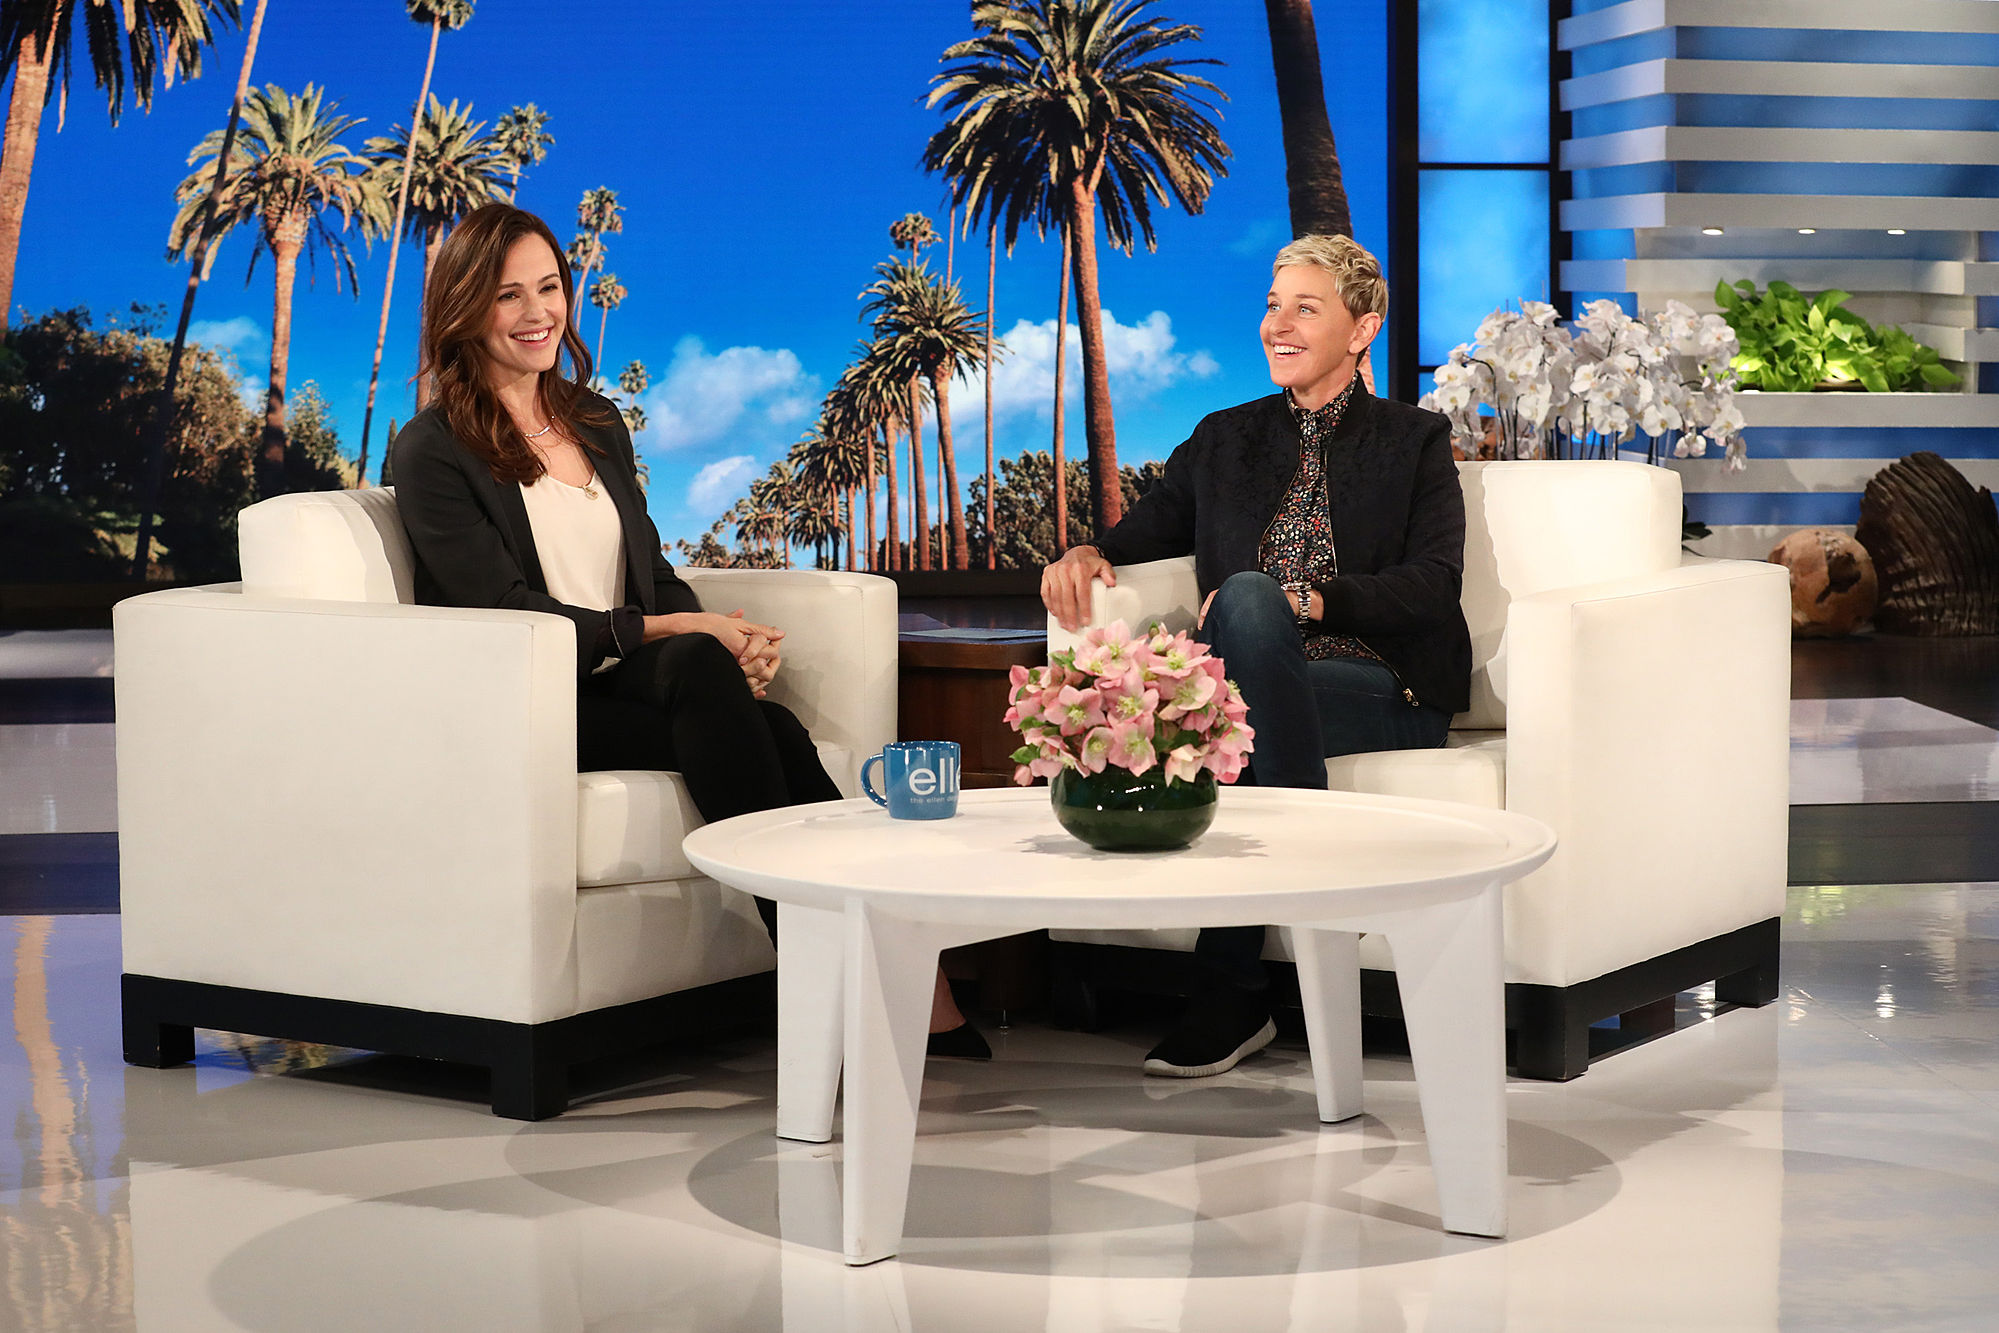 Jennifer Garner Has a Terrible Time During Ellen DeGeneres' Blind Taste Test: 'This Is The Worst Game'